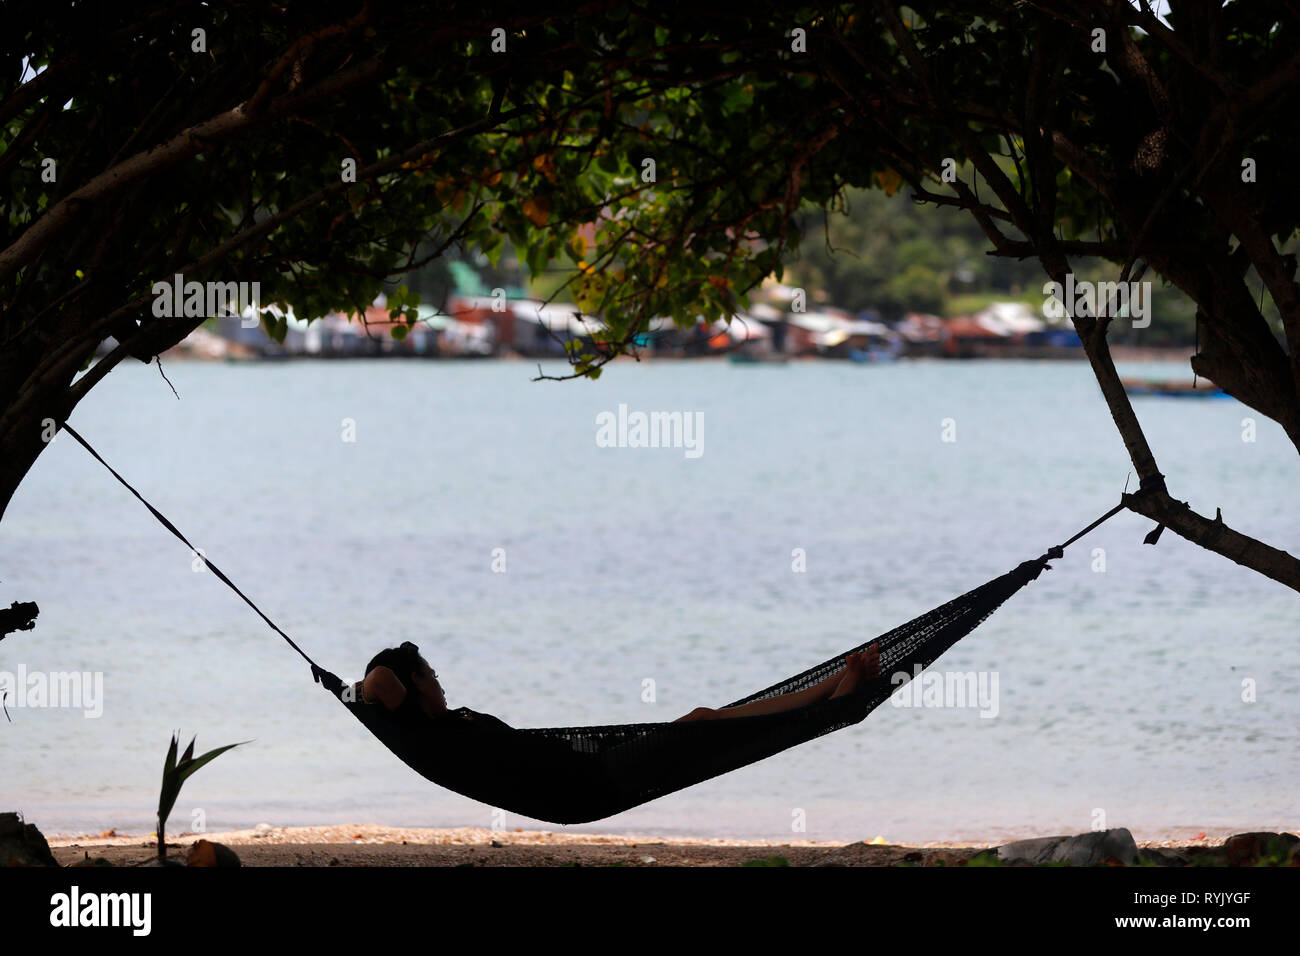 South China Sea. Woman relaxing on a beach  in a hammock.  Ha Tien. Vietnam. - Stock Image